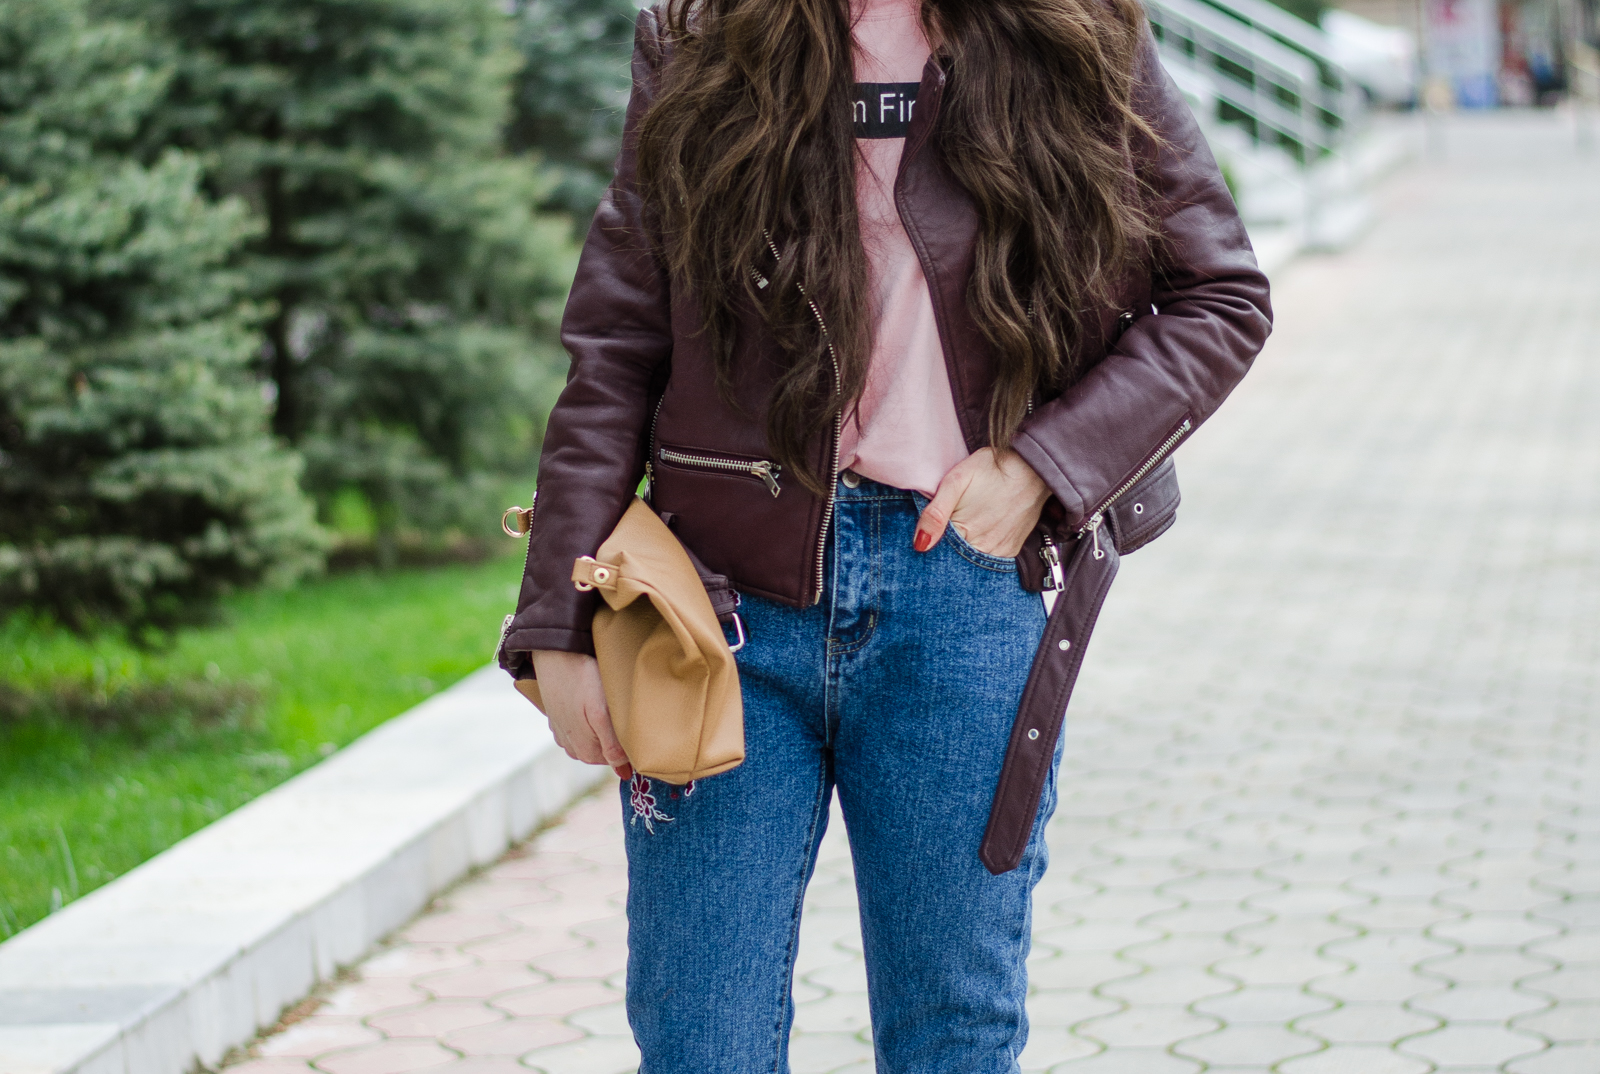 fashion%2Bblogger%2Bdiyorasnotes%2Bdiyora%2Bbeta%2Boutfitoftheday%2Bstreetstyle%2Bbaseball%2Bhat%2Bleather%2Bjacket%2Bembroidery%2Bjeans%2B%2B 1 - HOW I STYLE JEANS WITH EMBROIDERY